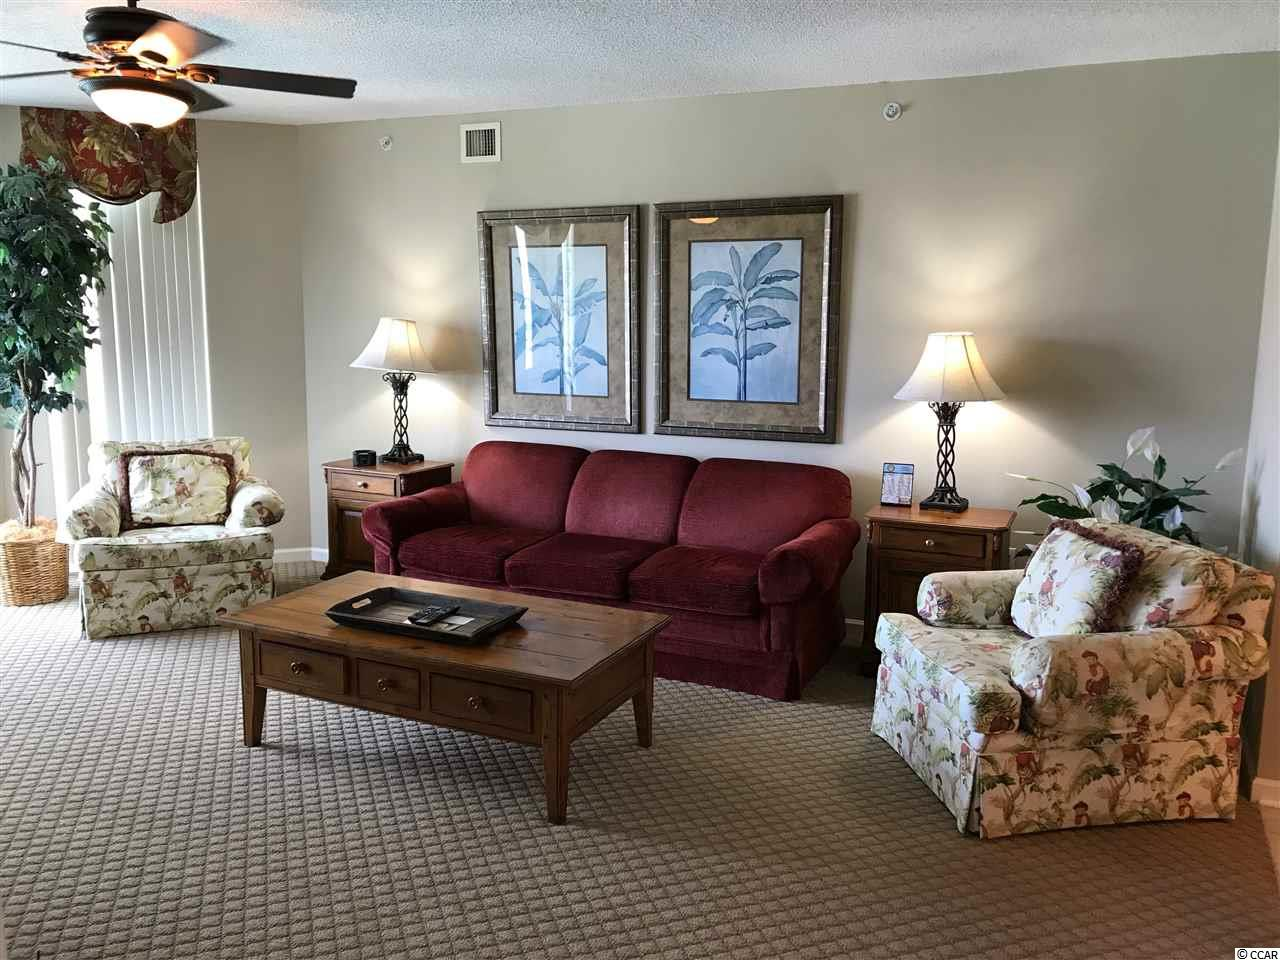 North Tower condo for sale in North Myrtle Beach, SC